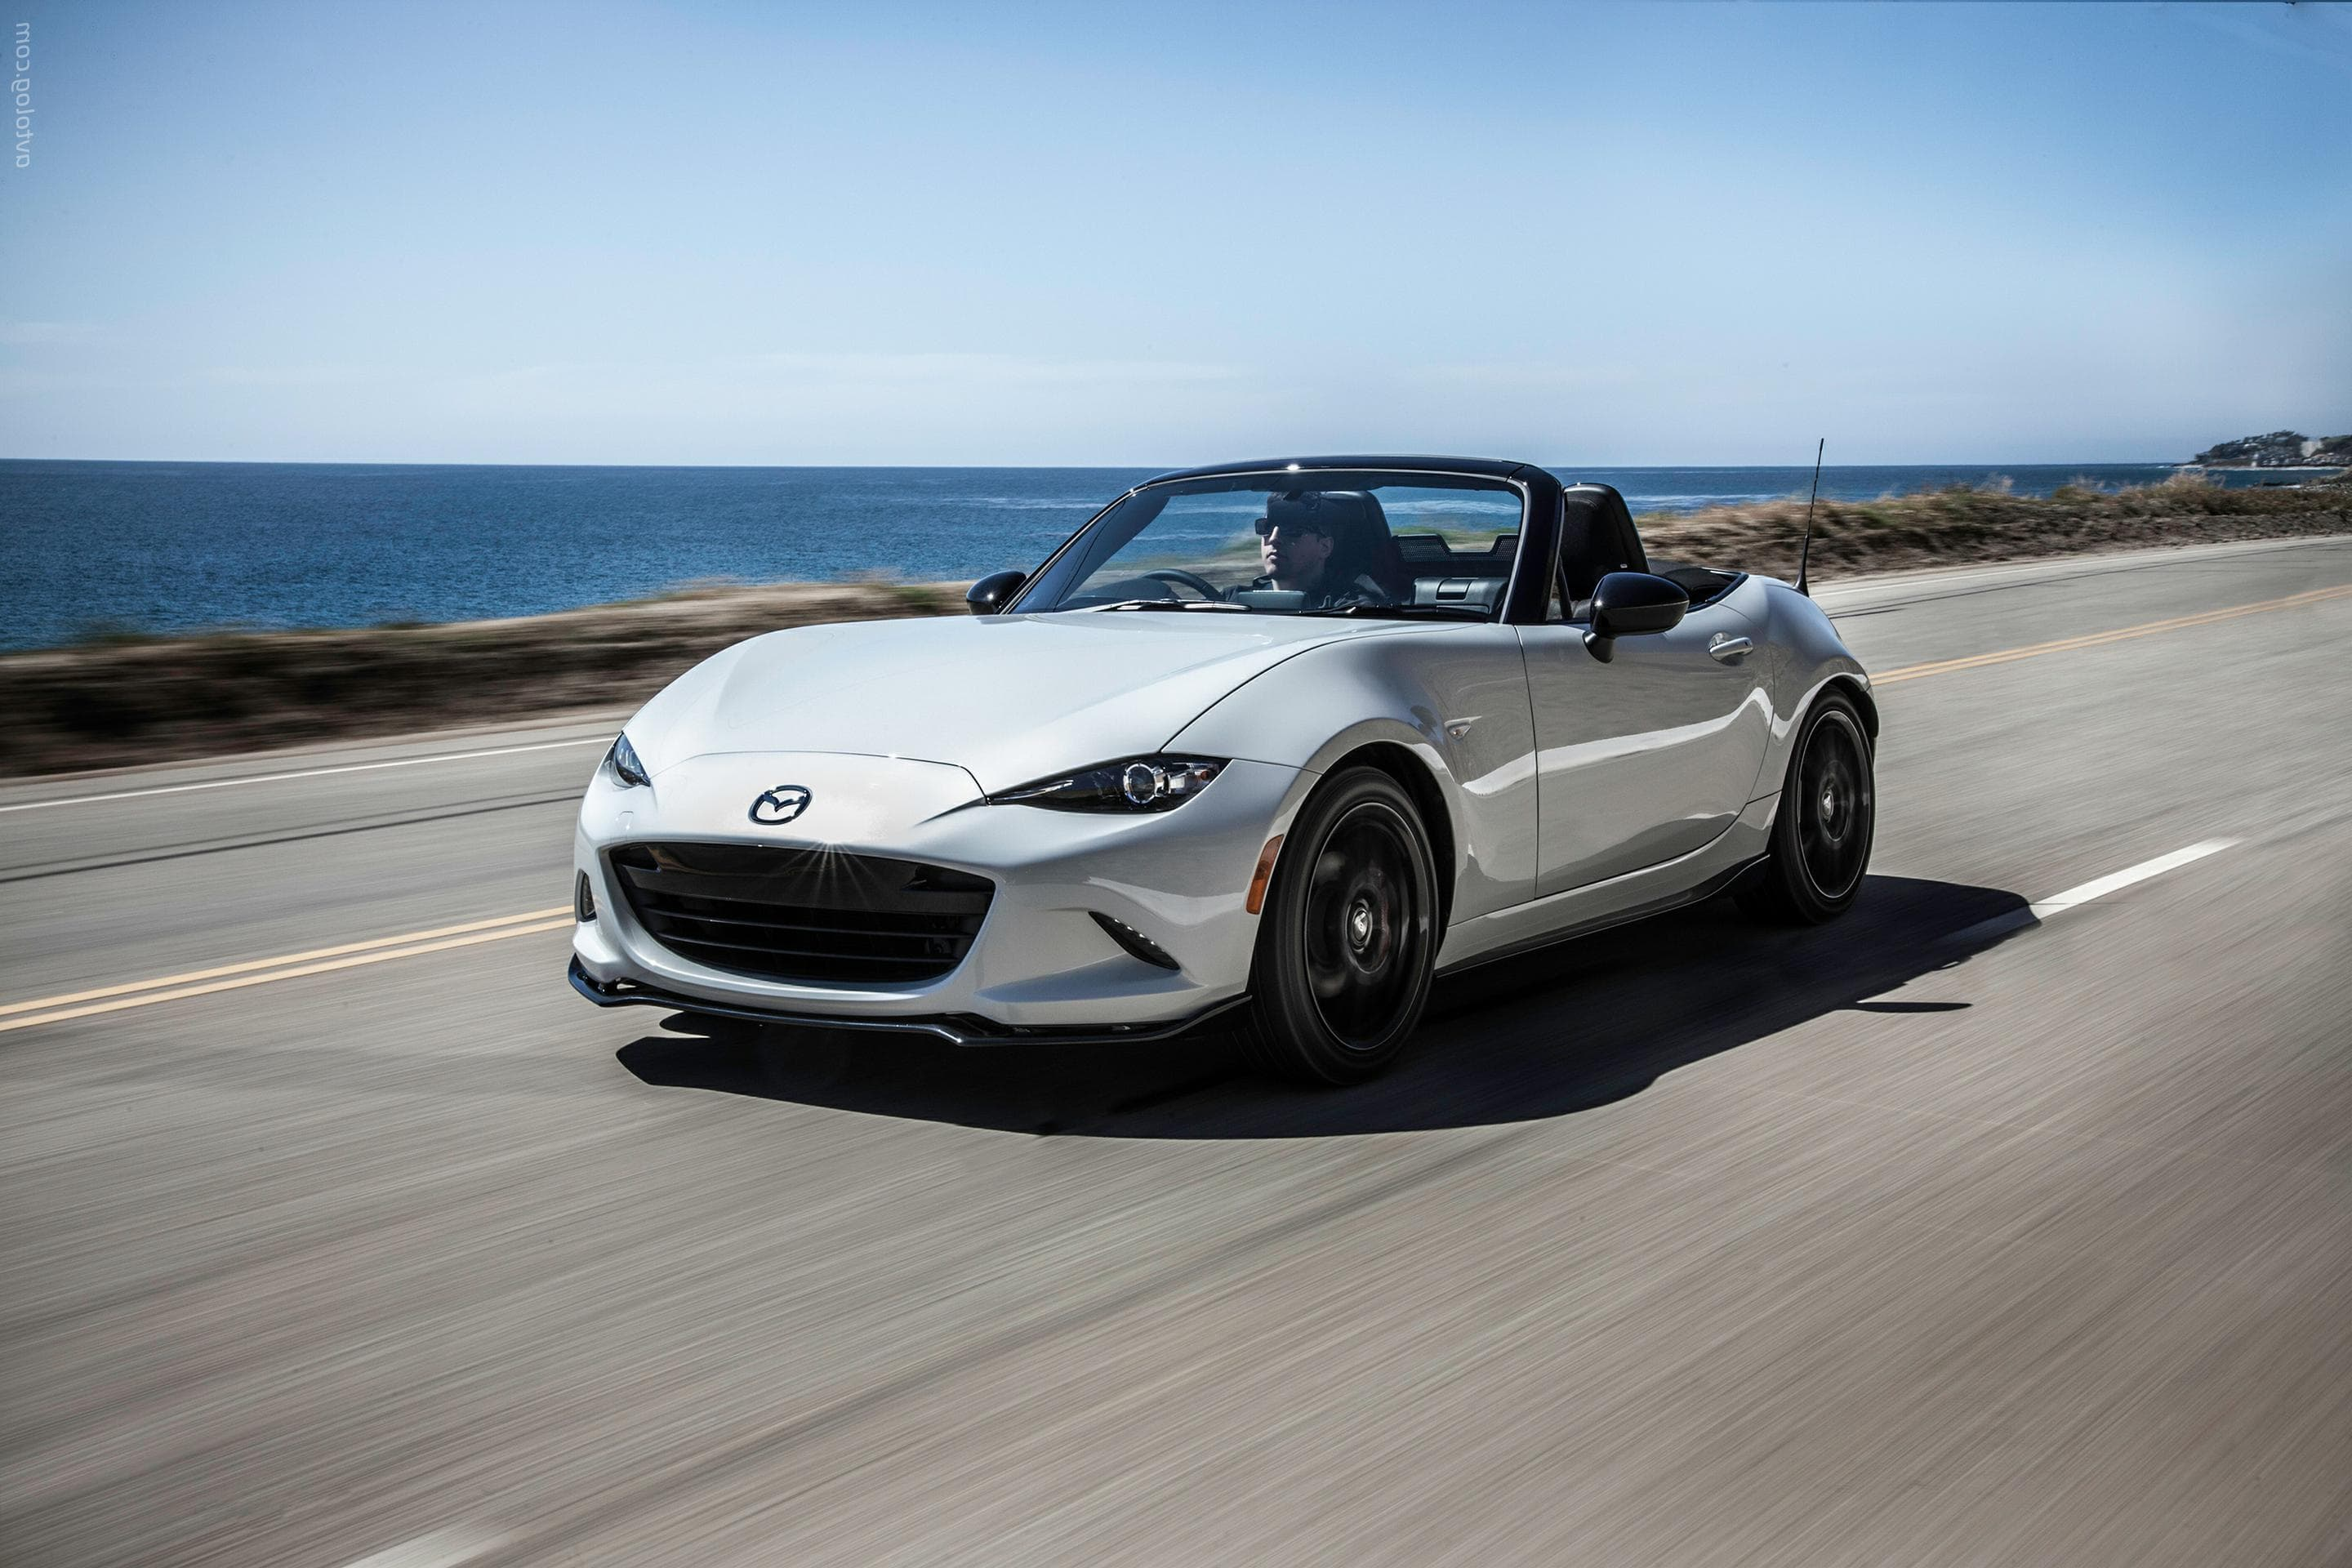 2016 mazda mx 5 miata wallpapers high quality resolution download. Black Bedroom Furniture Sets. Home Design Ideas